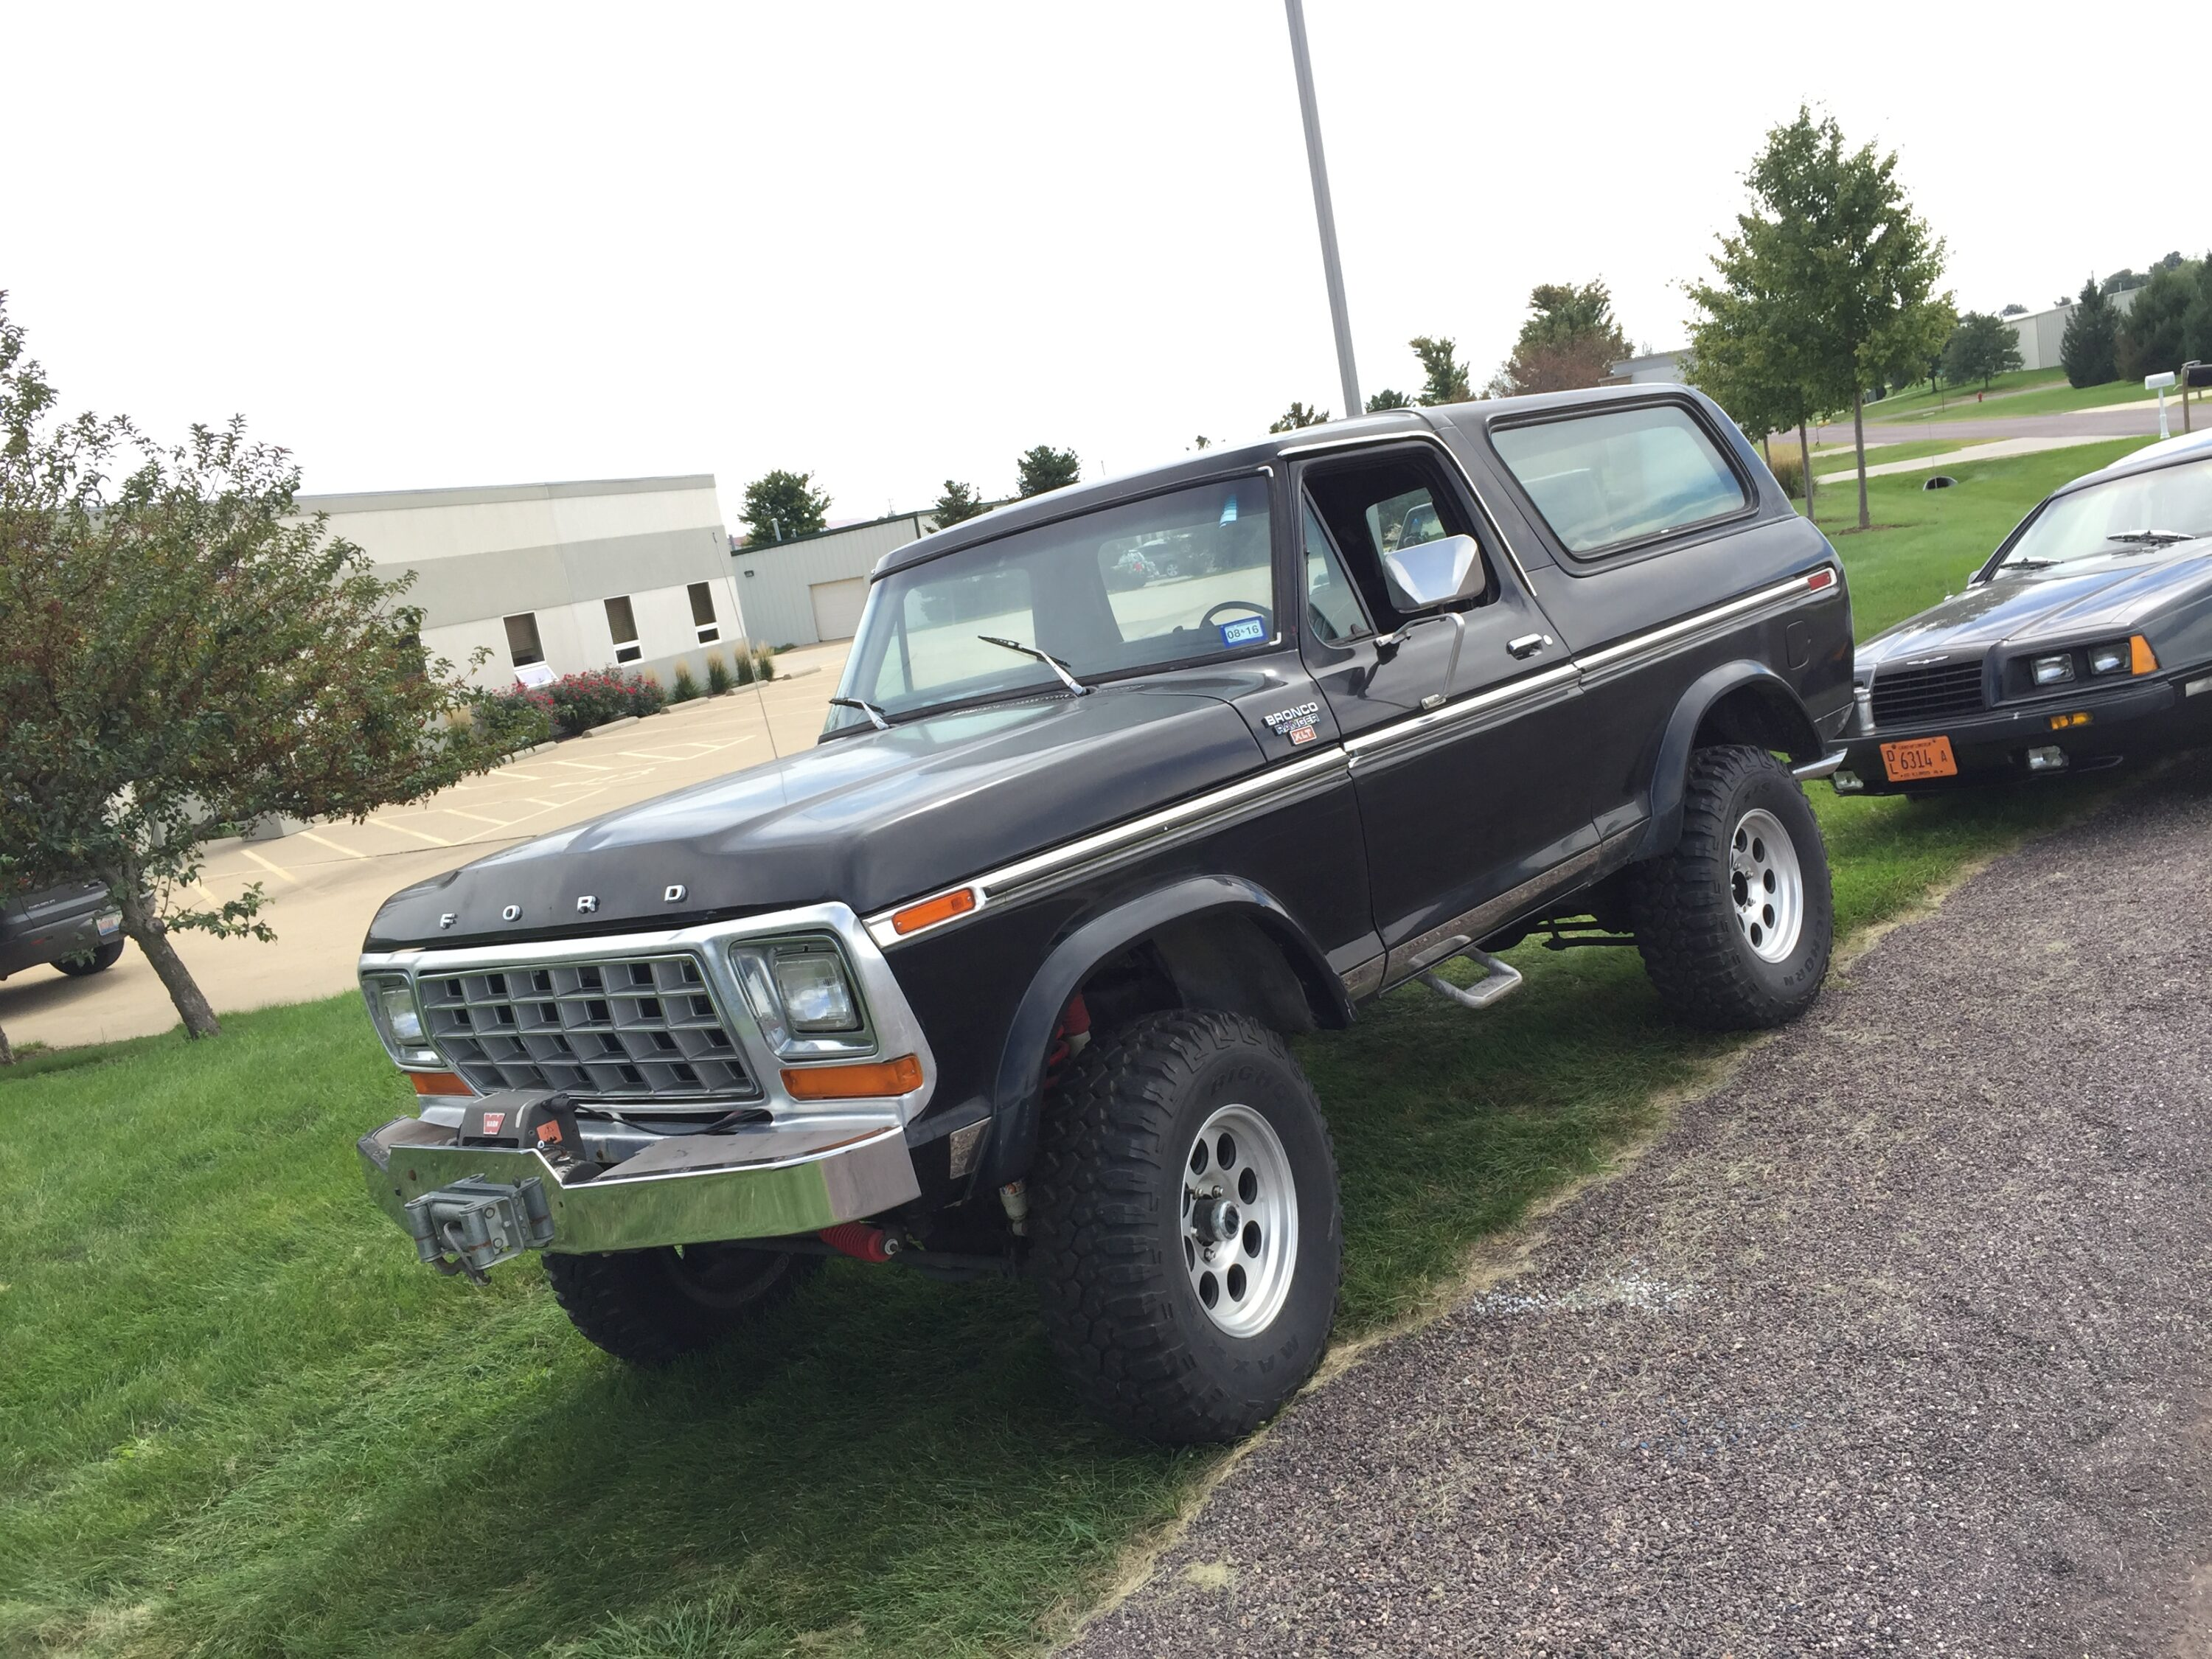 1979 Ford Bronco Maxlider Brothers Customs 1969 Ranger Xlt This